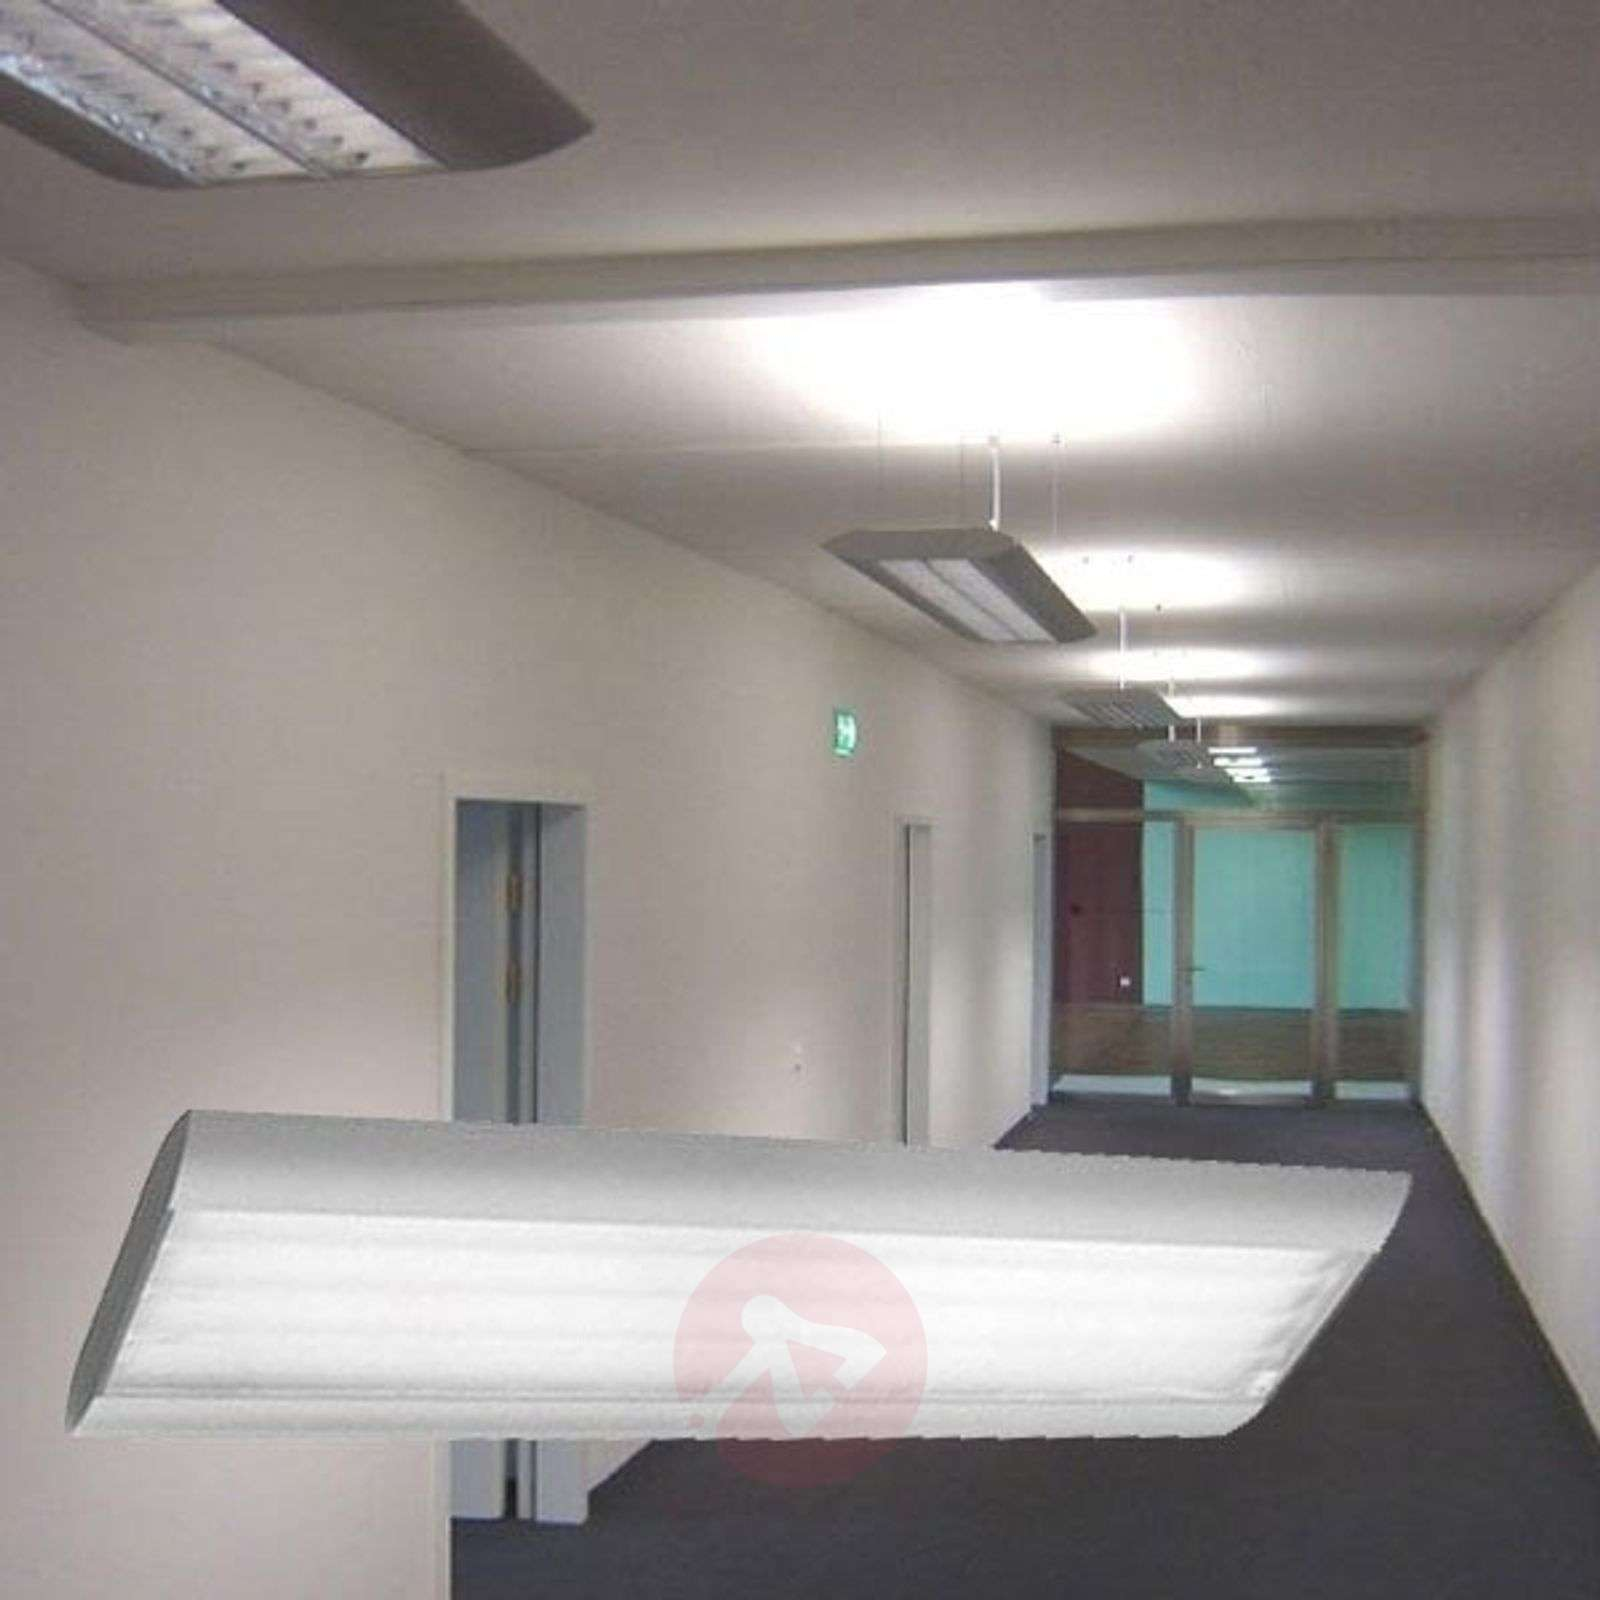 Pendant light 2120 as a single light 2 x 80W prism-1009071-01